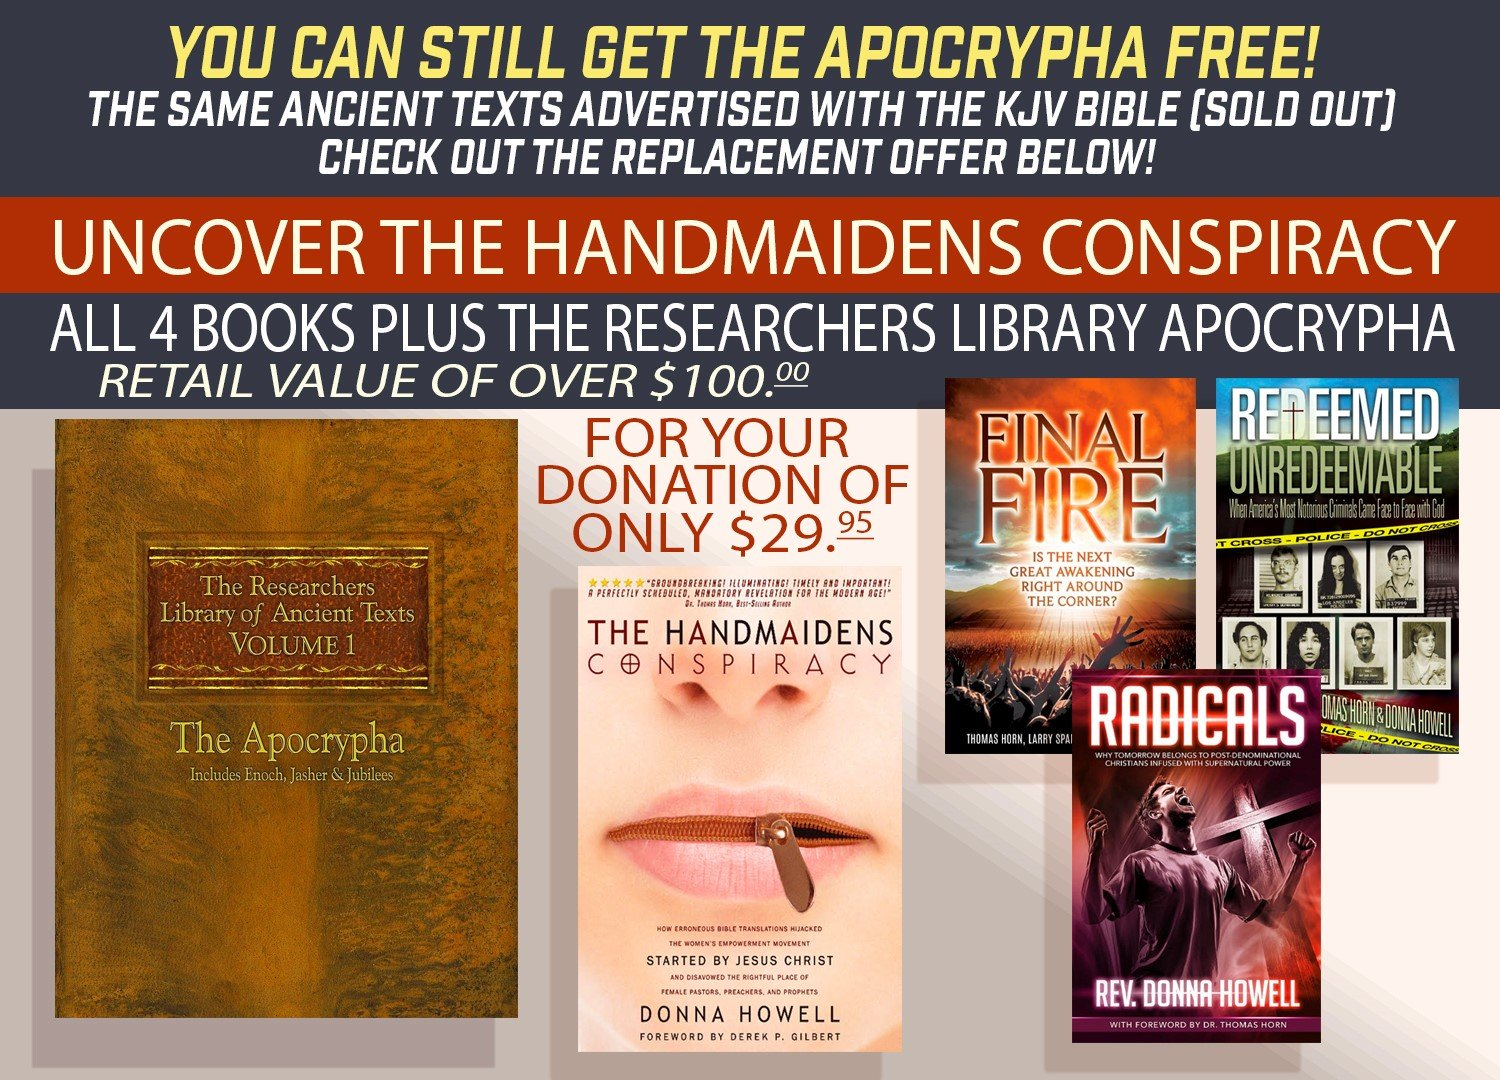 YOU CAN STILL GET THE APOCRYPHA FREE–THE SAME ANCIENT BOOKS DISCUSSED BY DR. THOMAS HORN, STEVE QUAYLE & DEREK GILBERT ON TV!